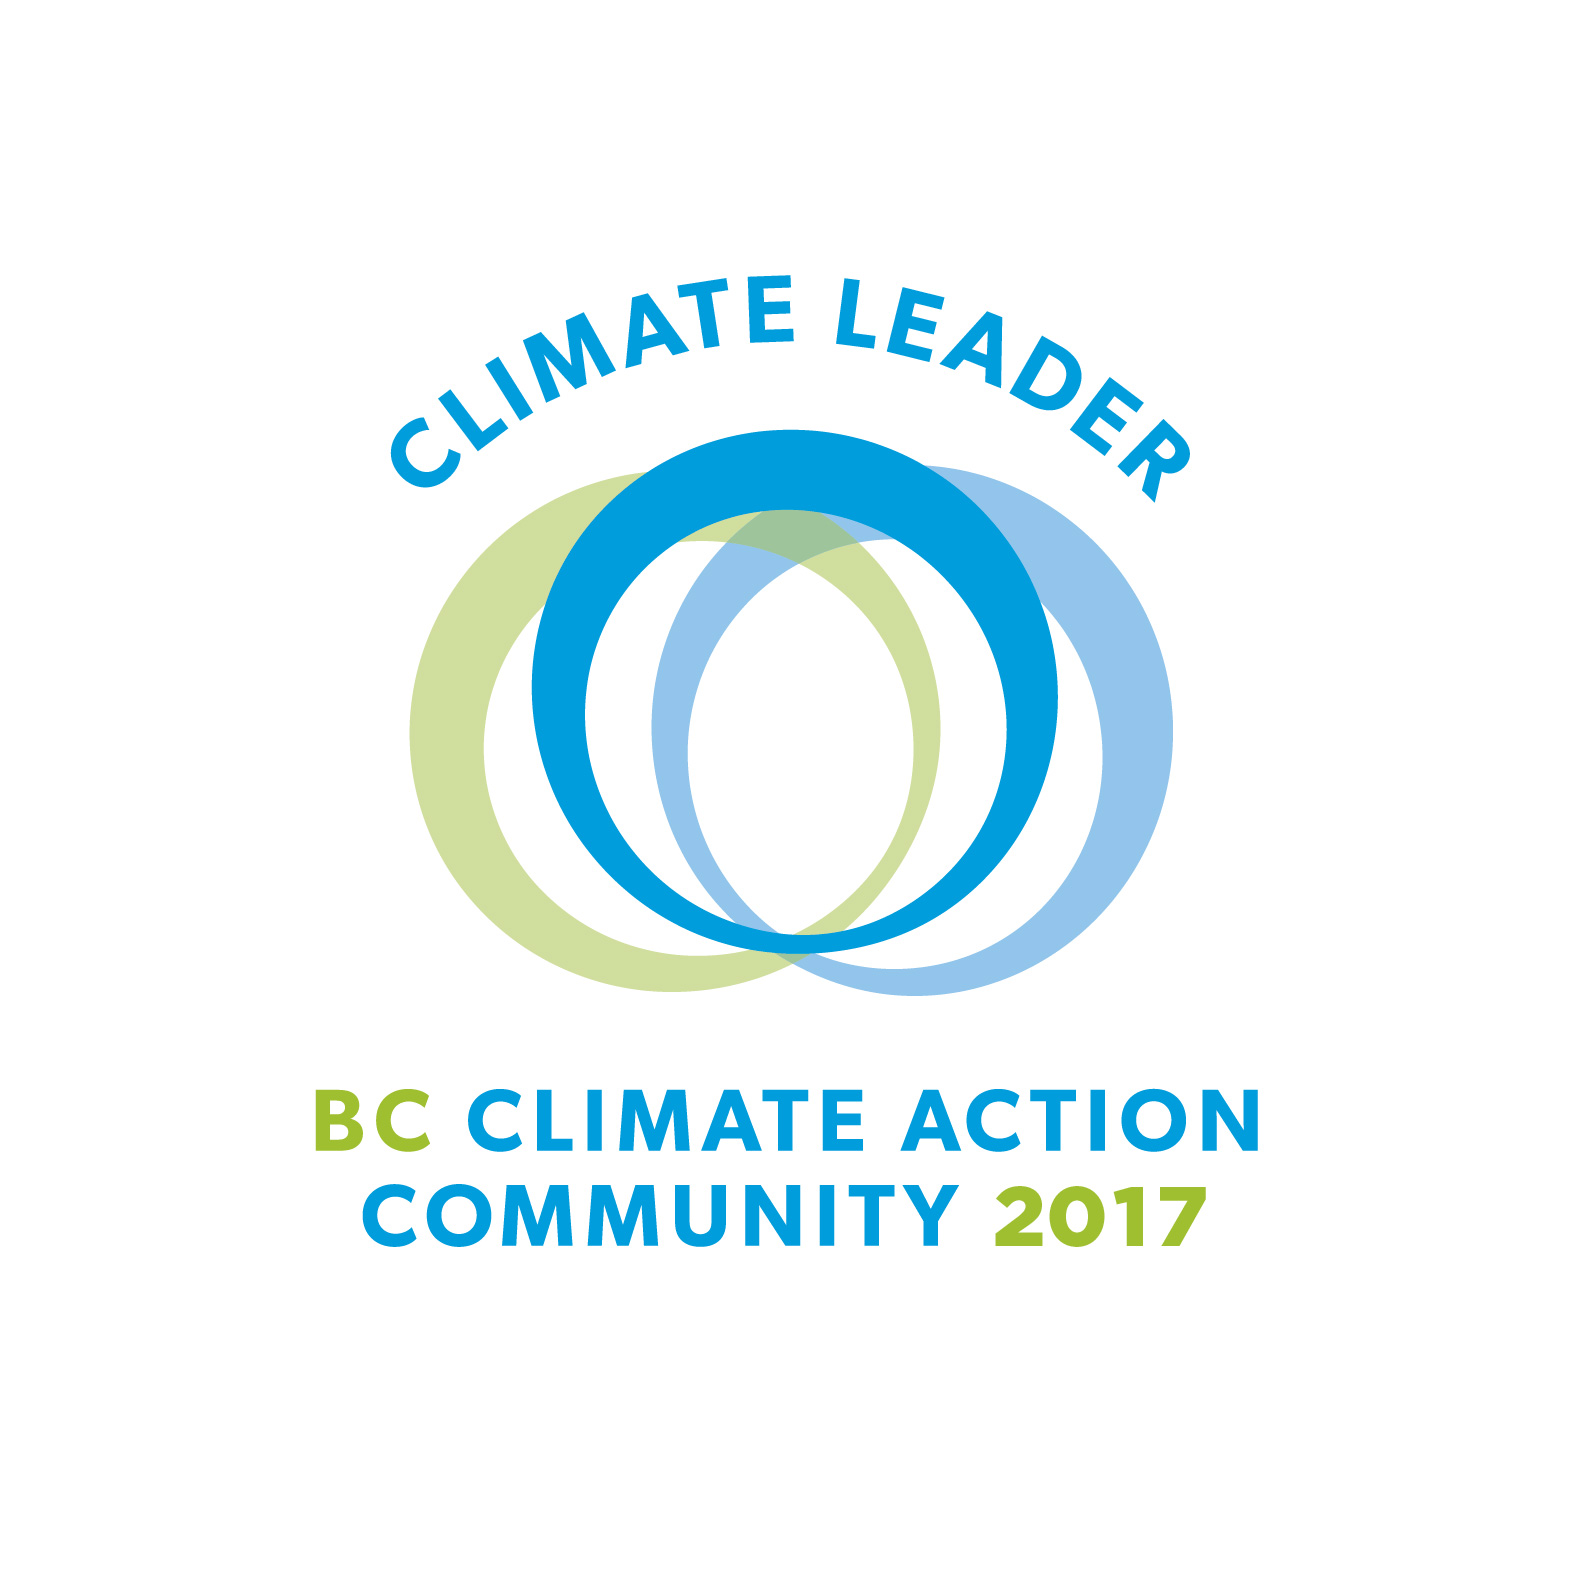 BC Climate Action Community - 2017